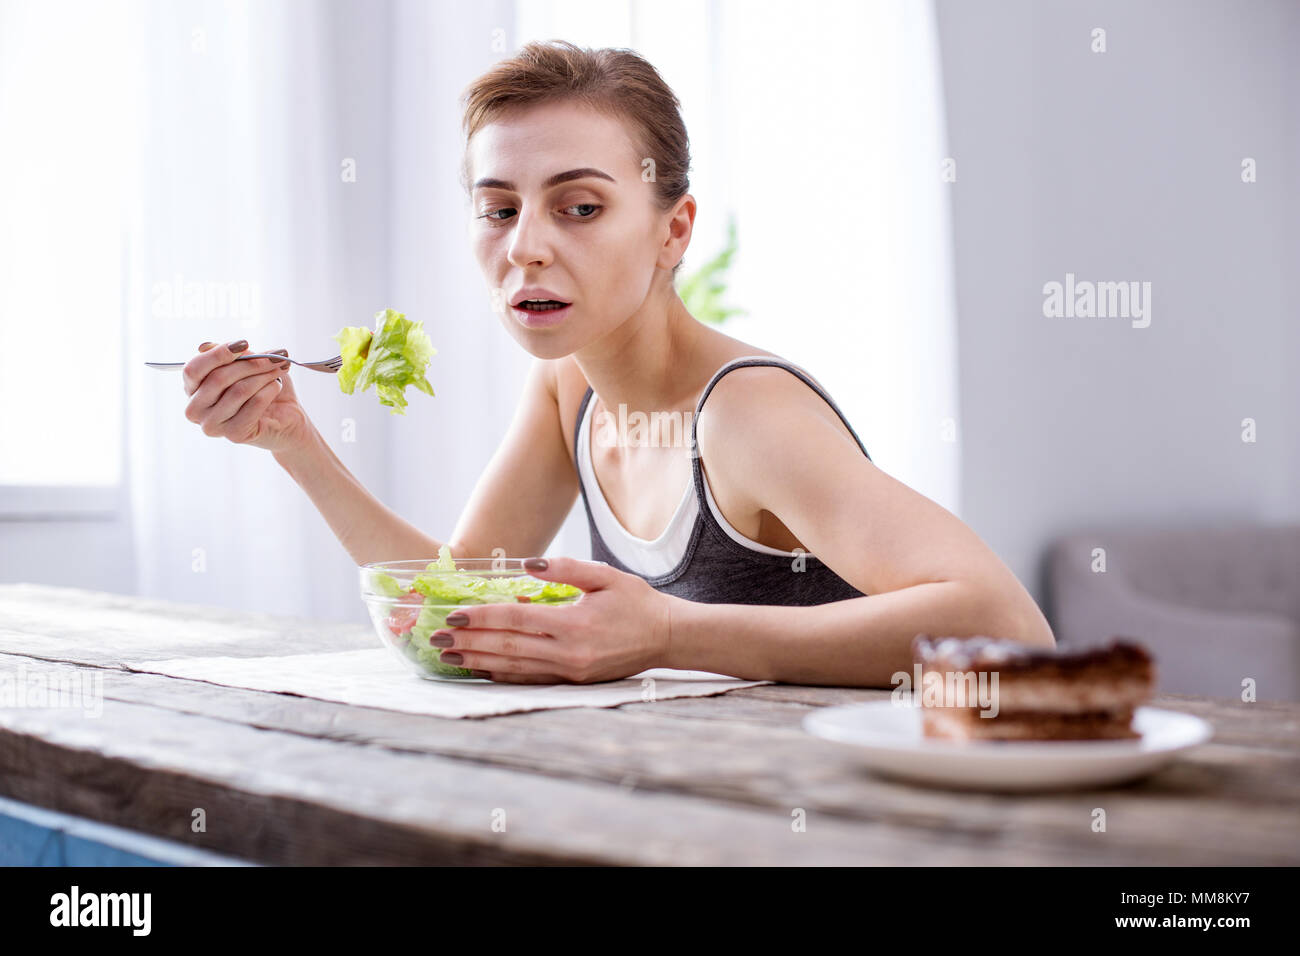 Depressed hungry woman looking at the cake - Stock Image